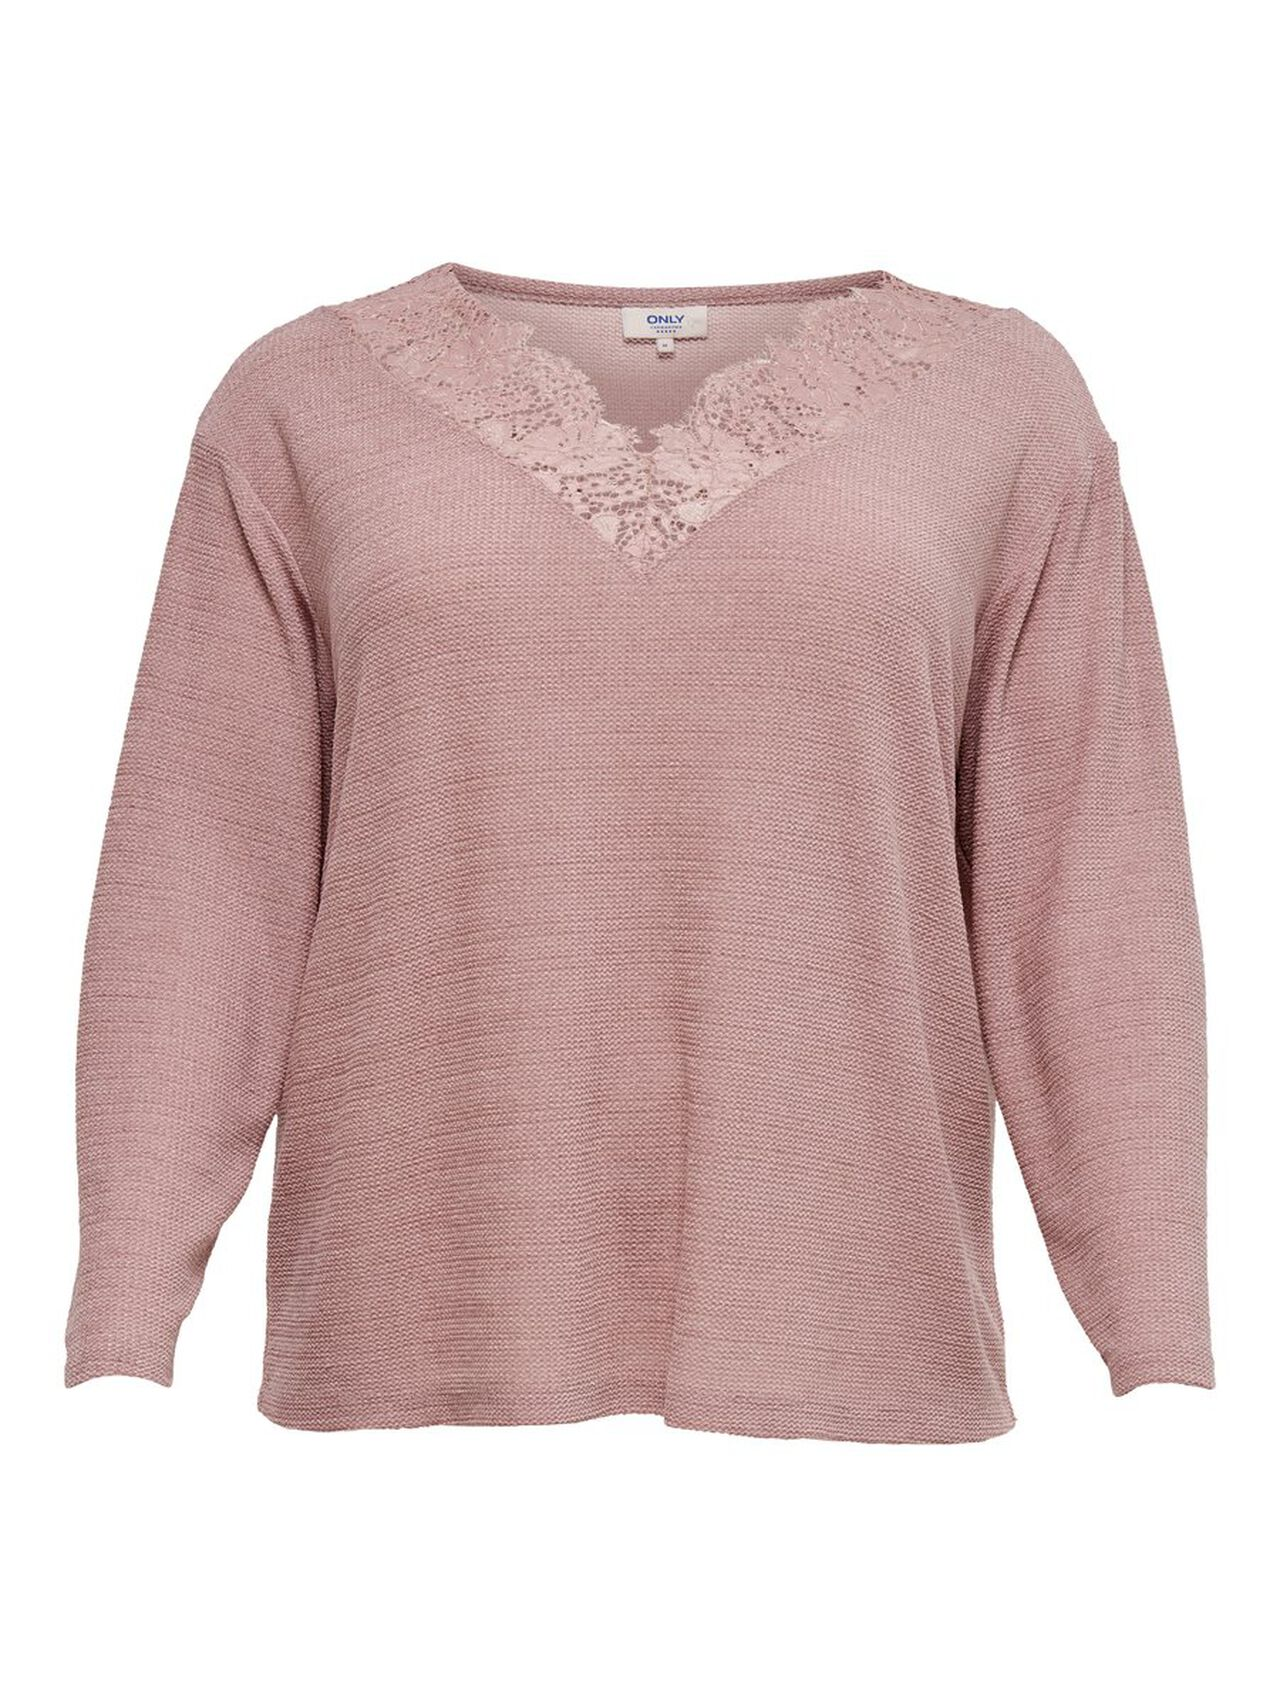 ONLY Curvy Lace Detail Long Sleeved Top Women Pink